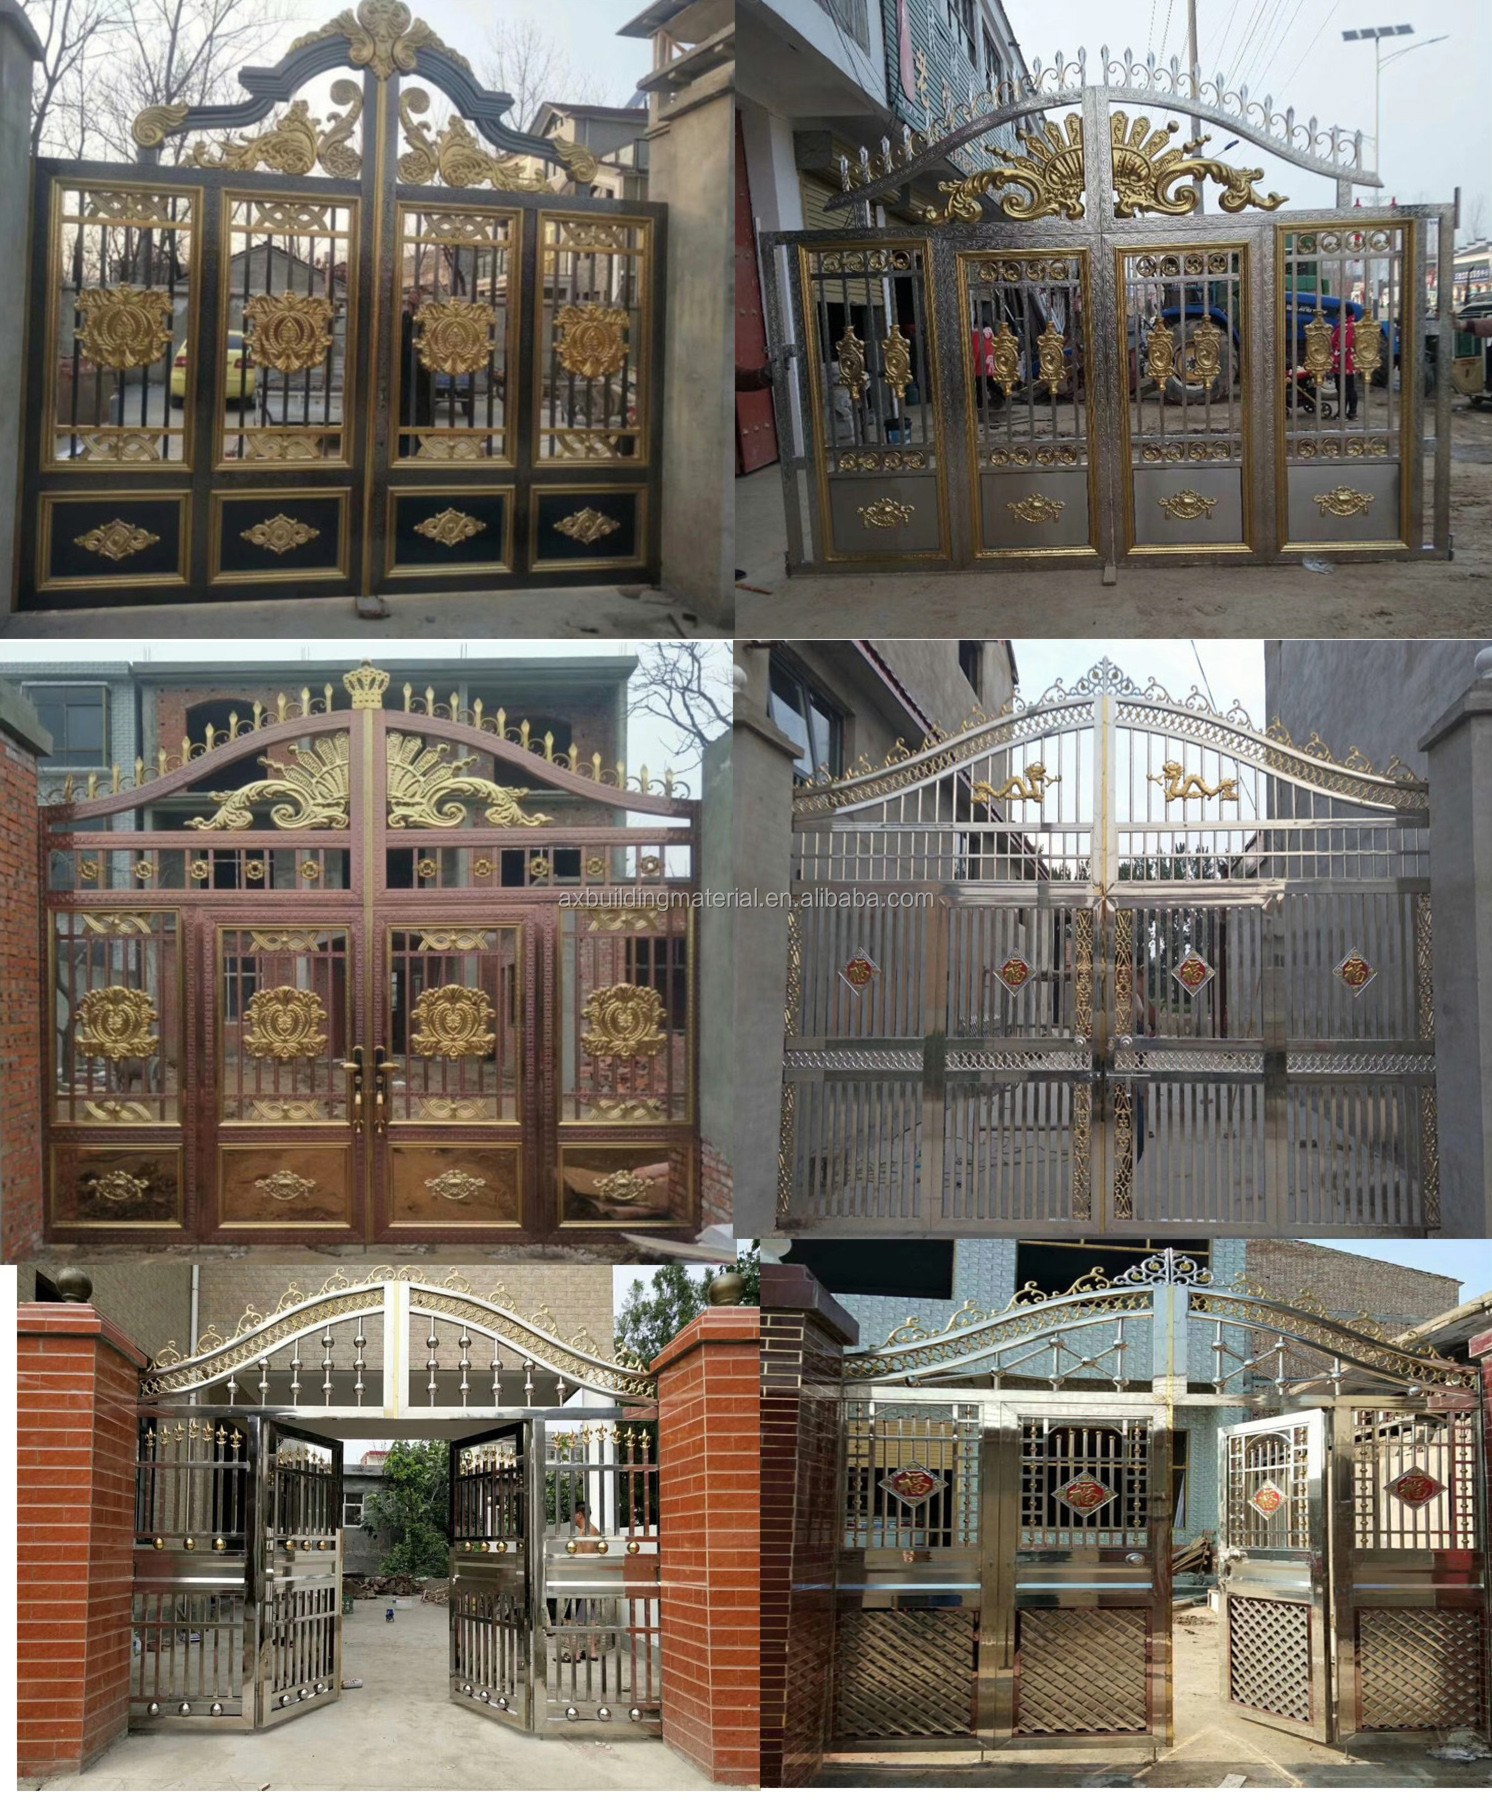 stainless steel security grill doors design